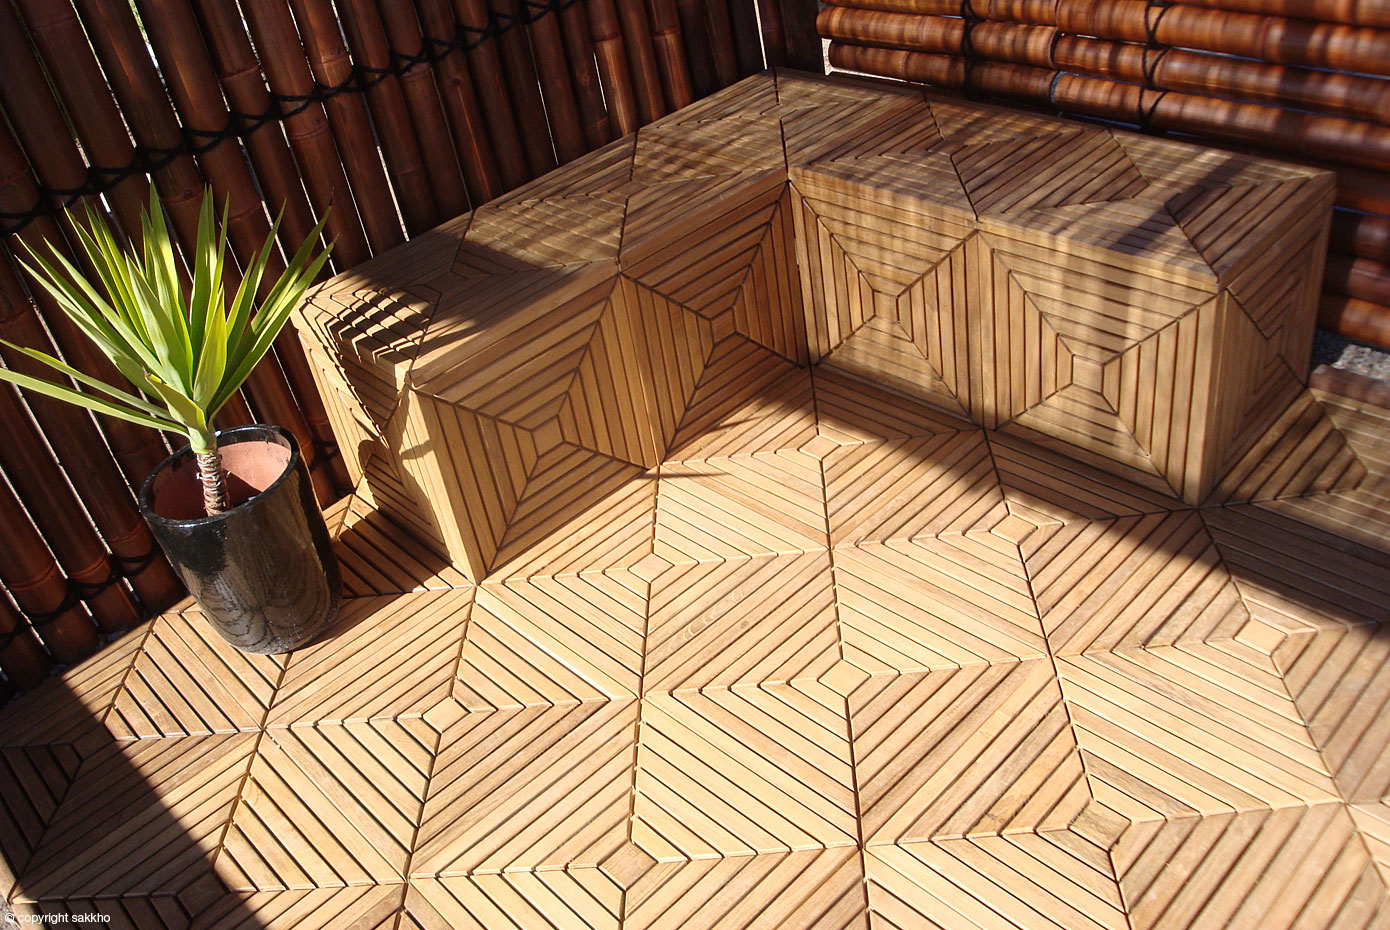 Outdoor Timber Tiles Decking Outdoor Area Timber Floor Pool Deck S By Sakkho